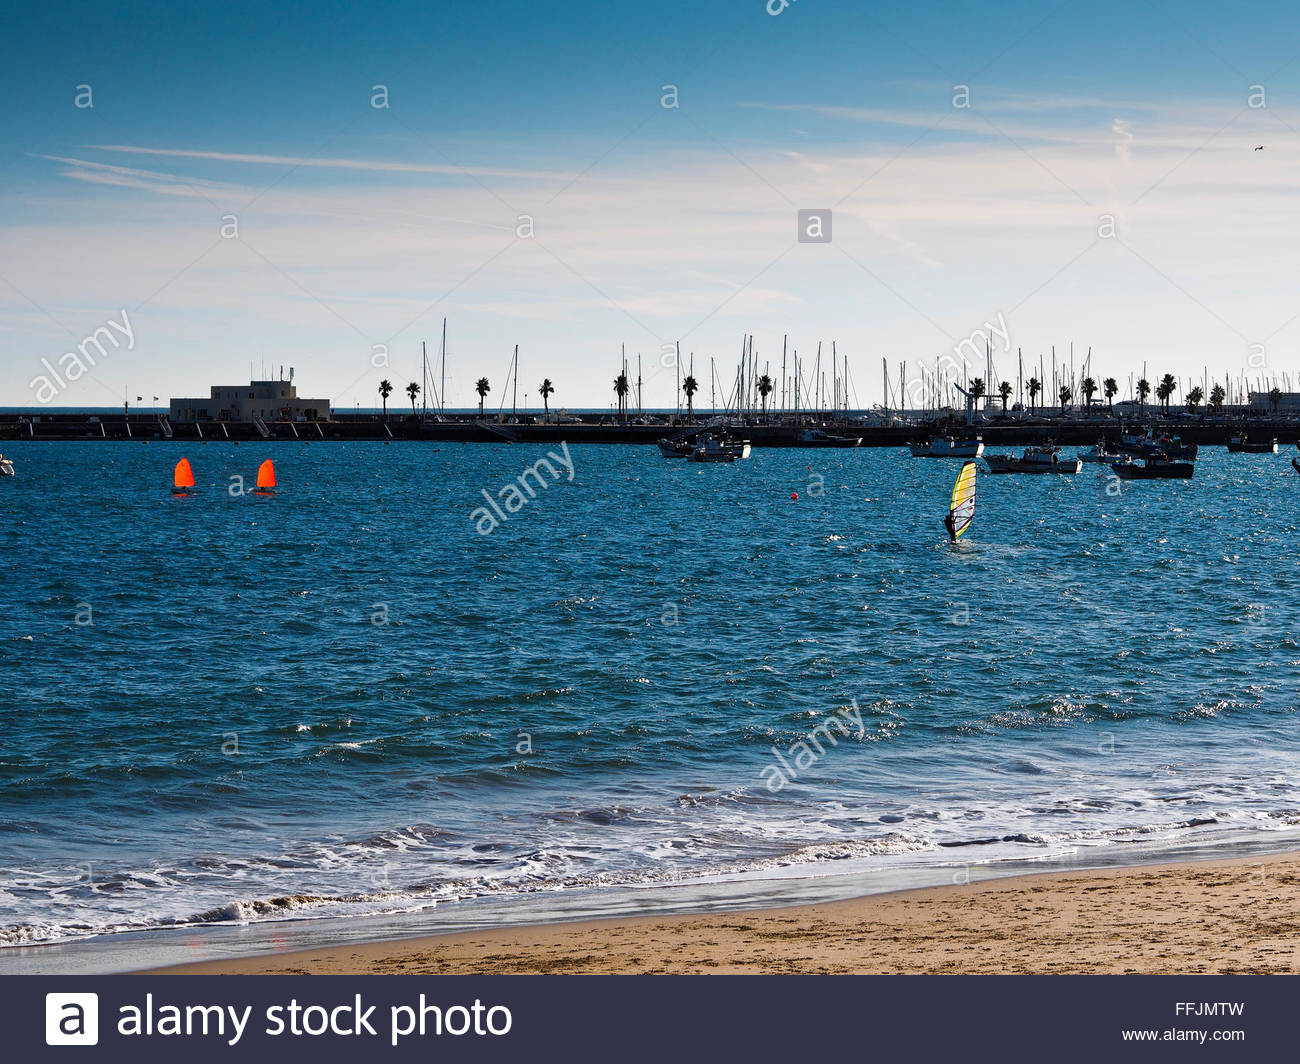 Sailing on Cascais Bay - Stock Image